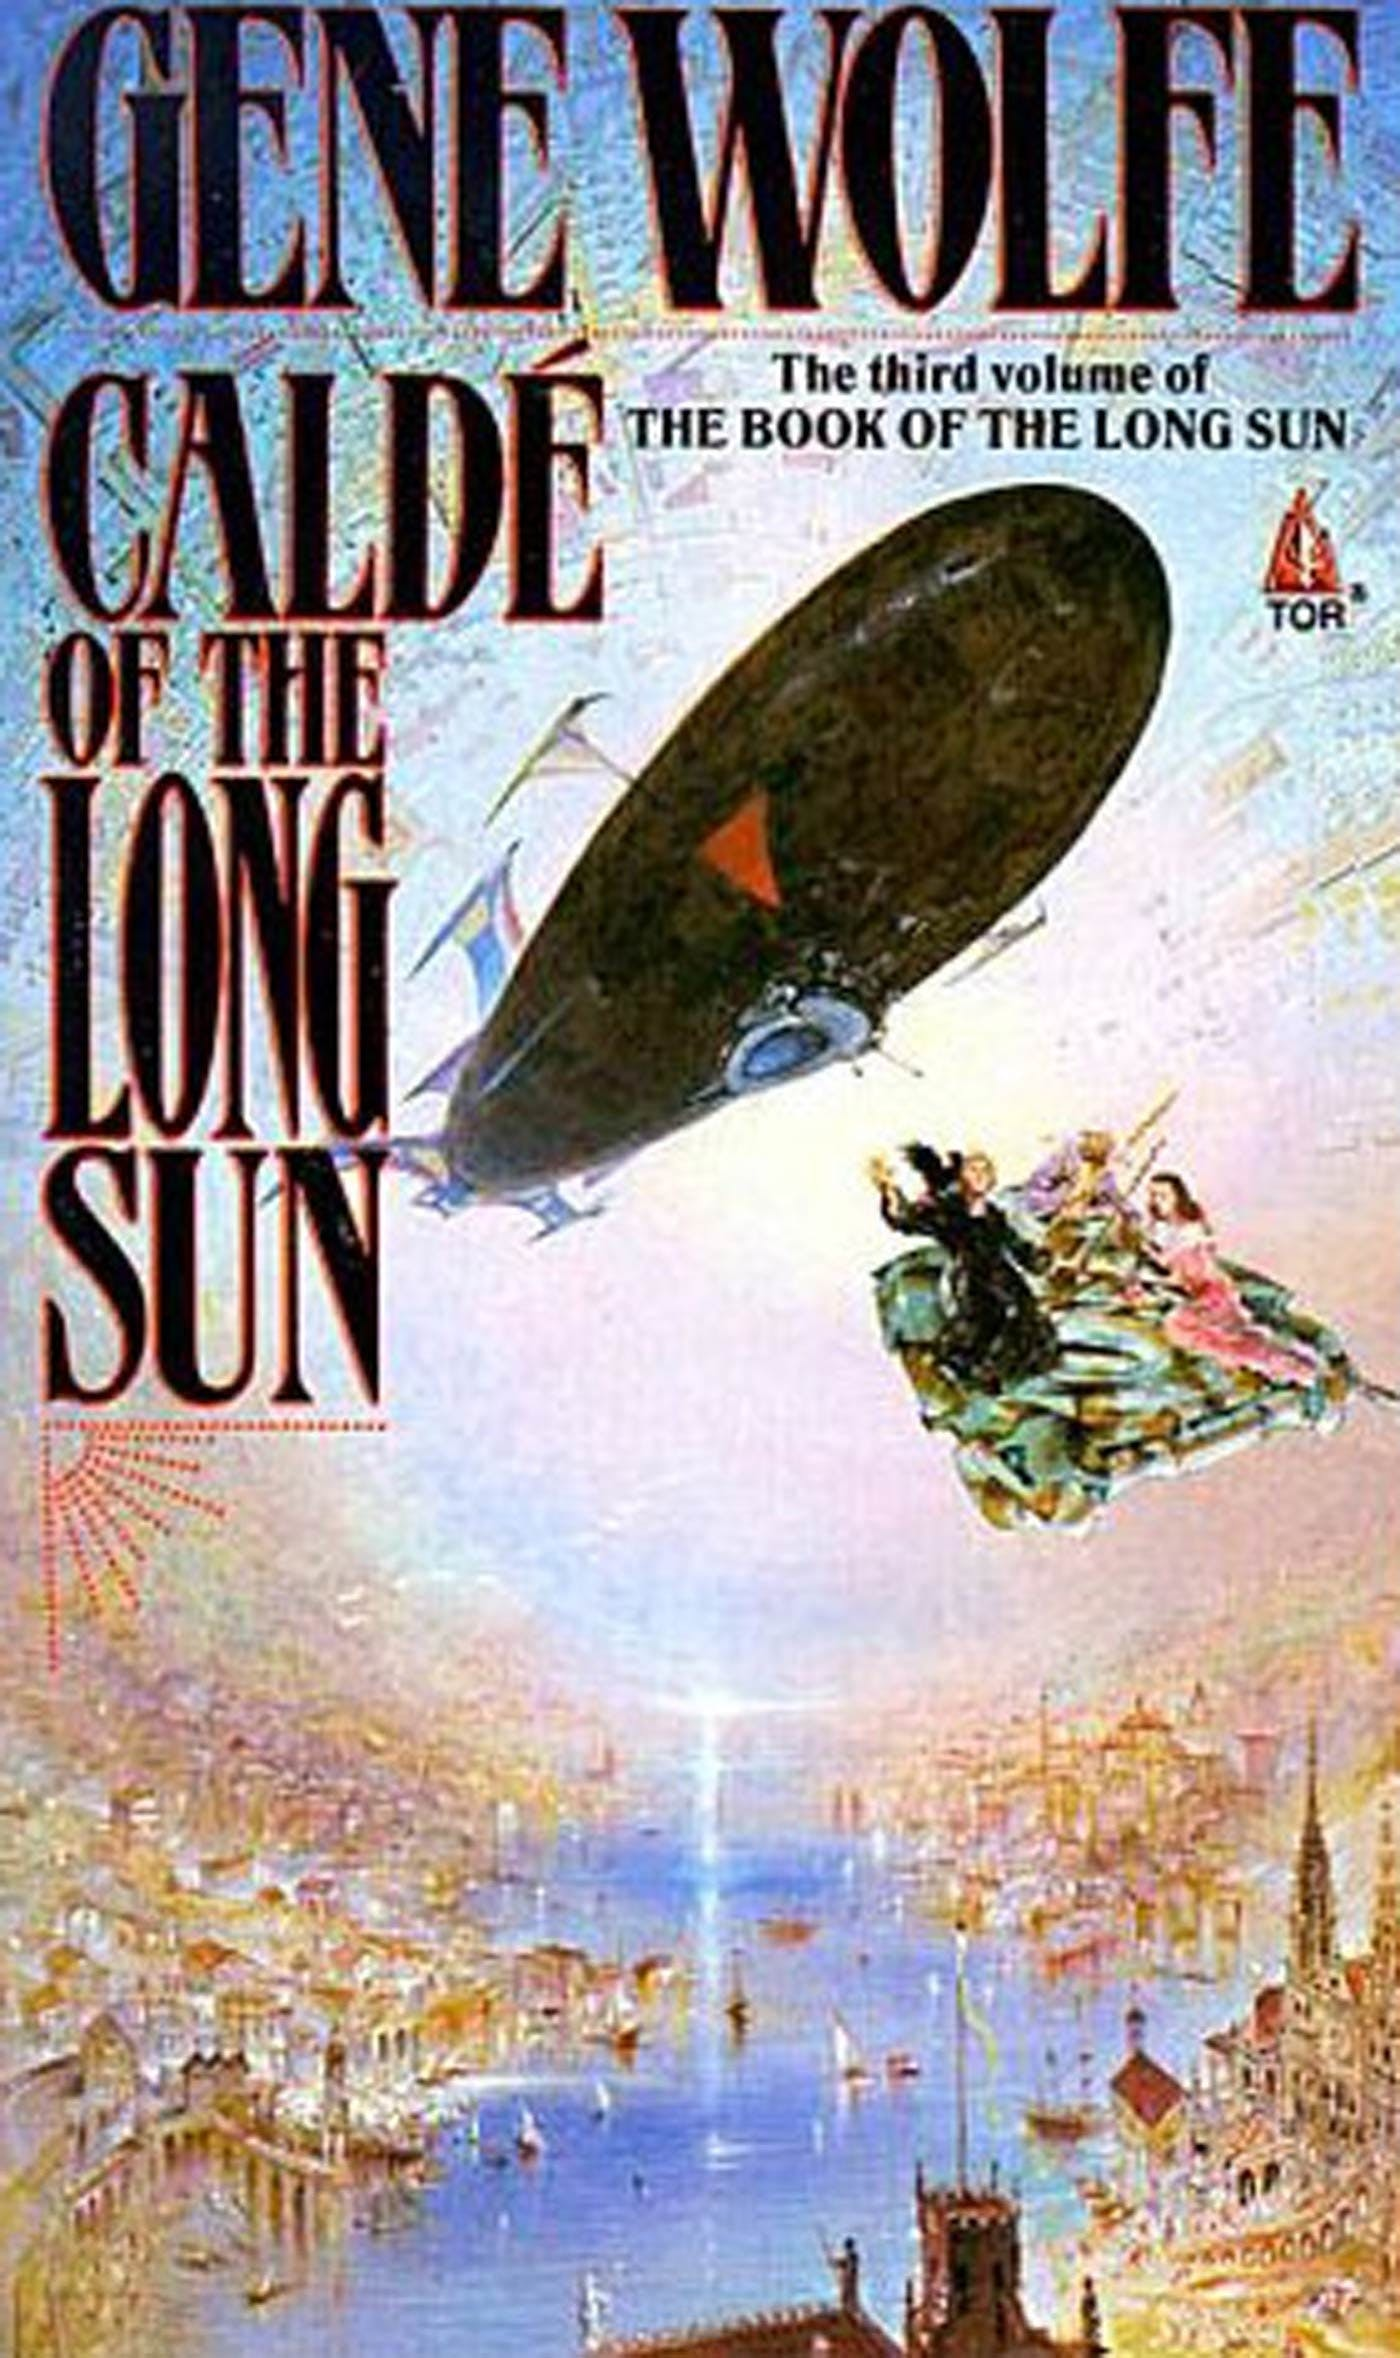 Image of Calde of the Long Sun